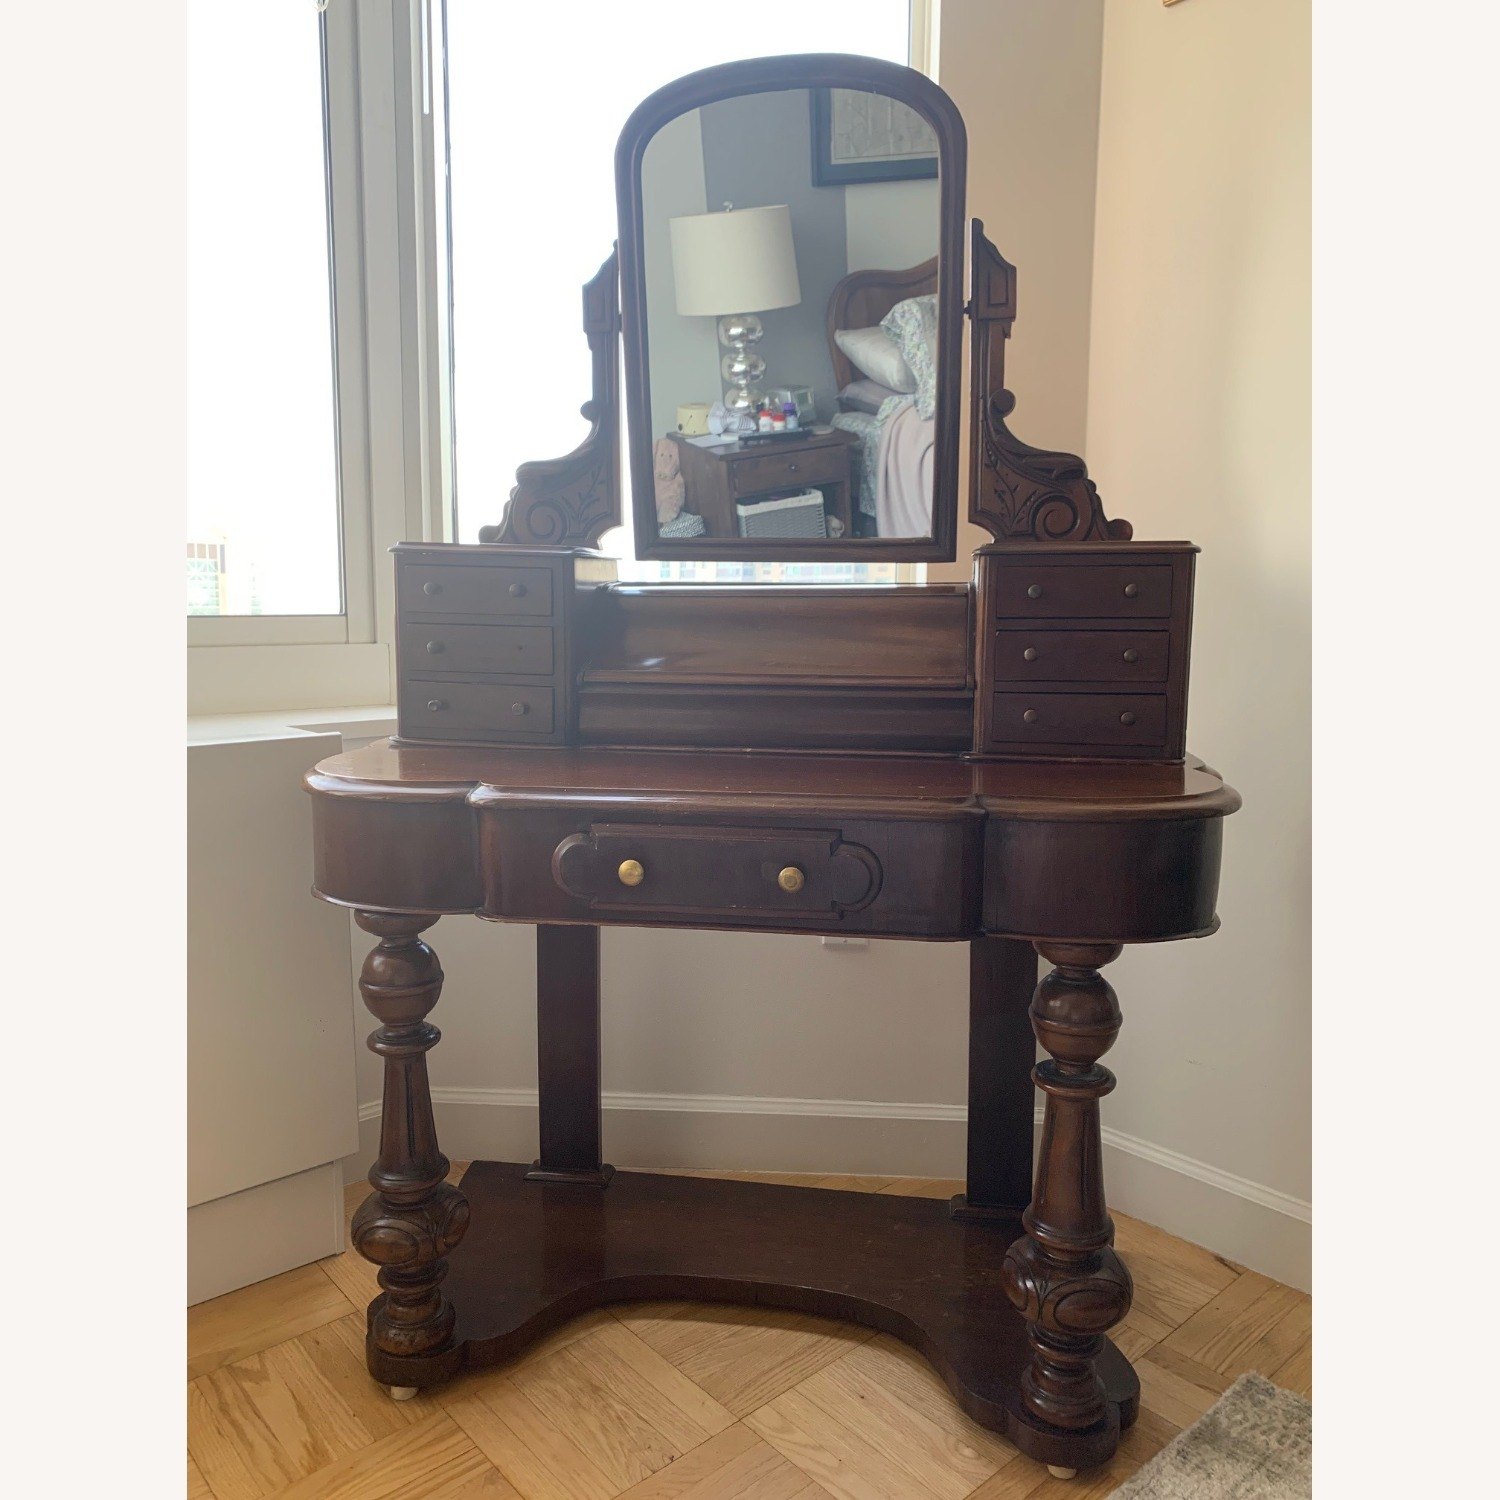 Victorian Antique Vanity Dressing Table and Stool - image-1